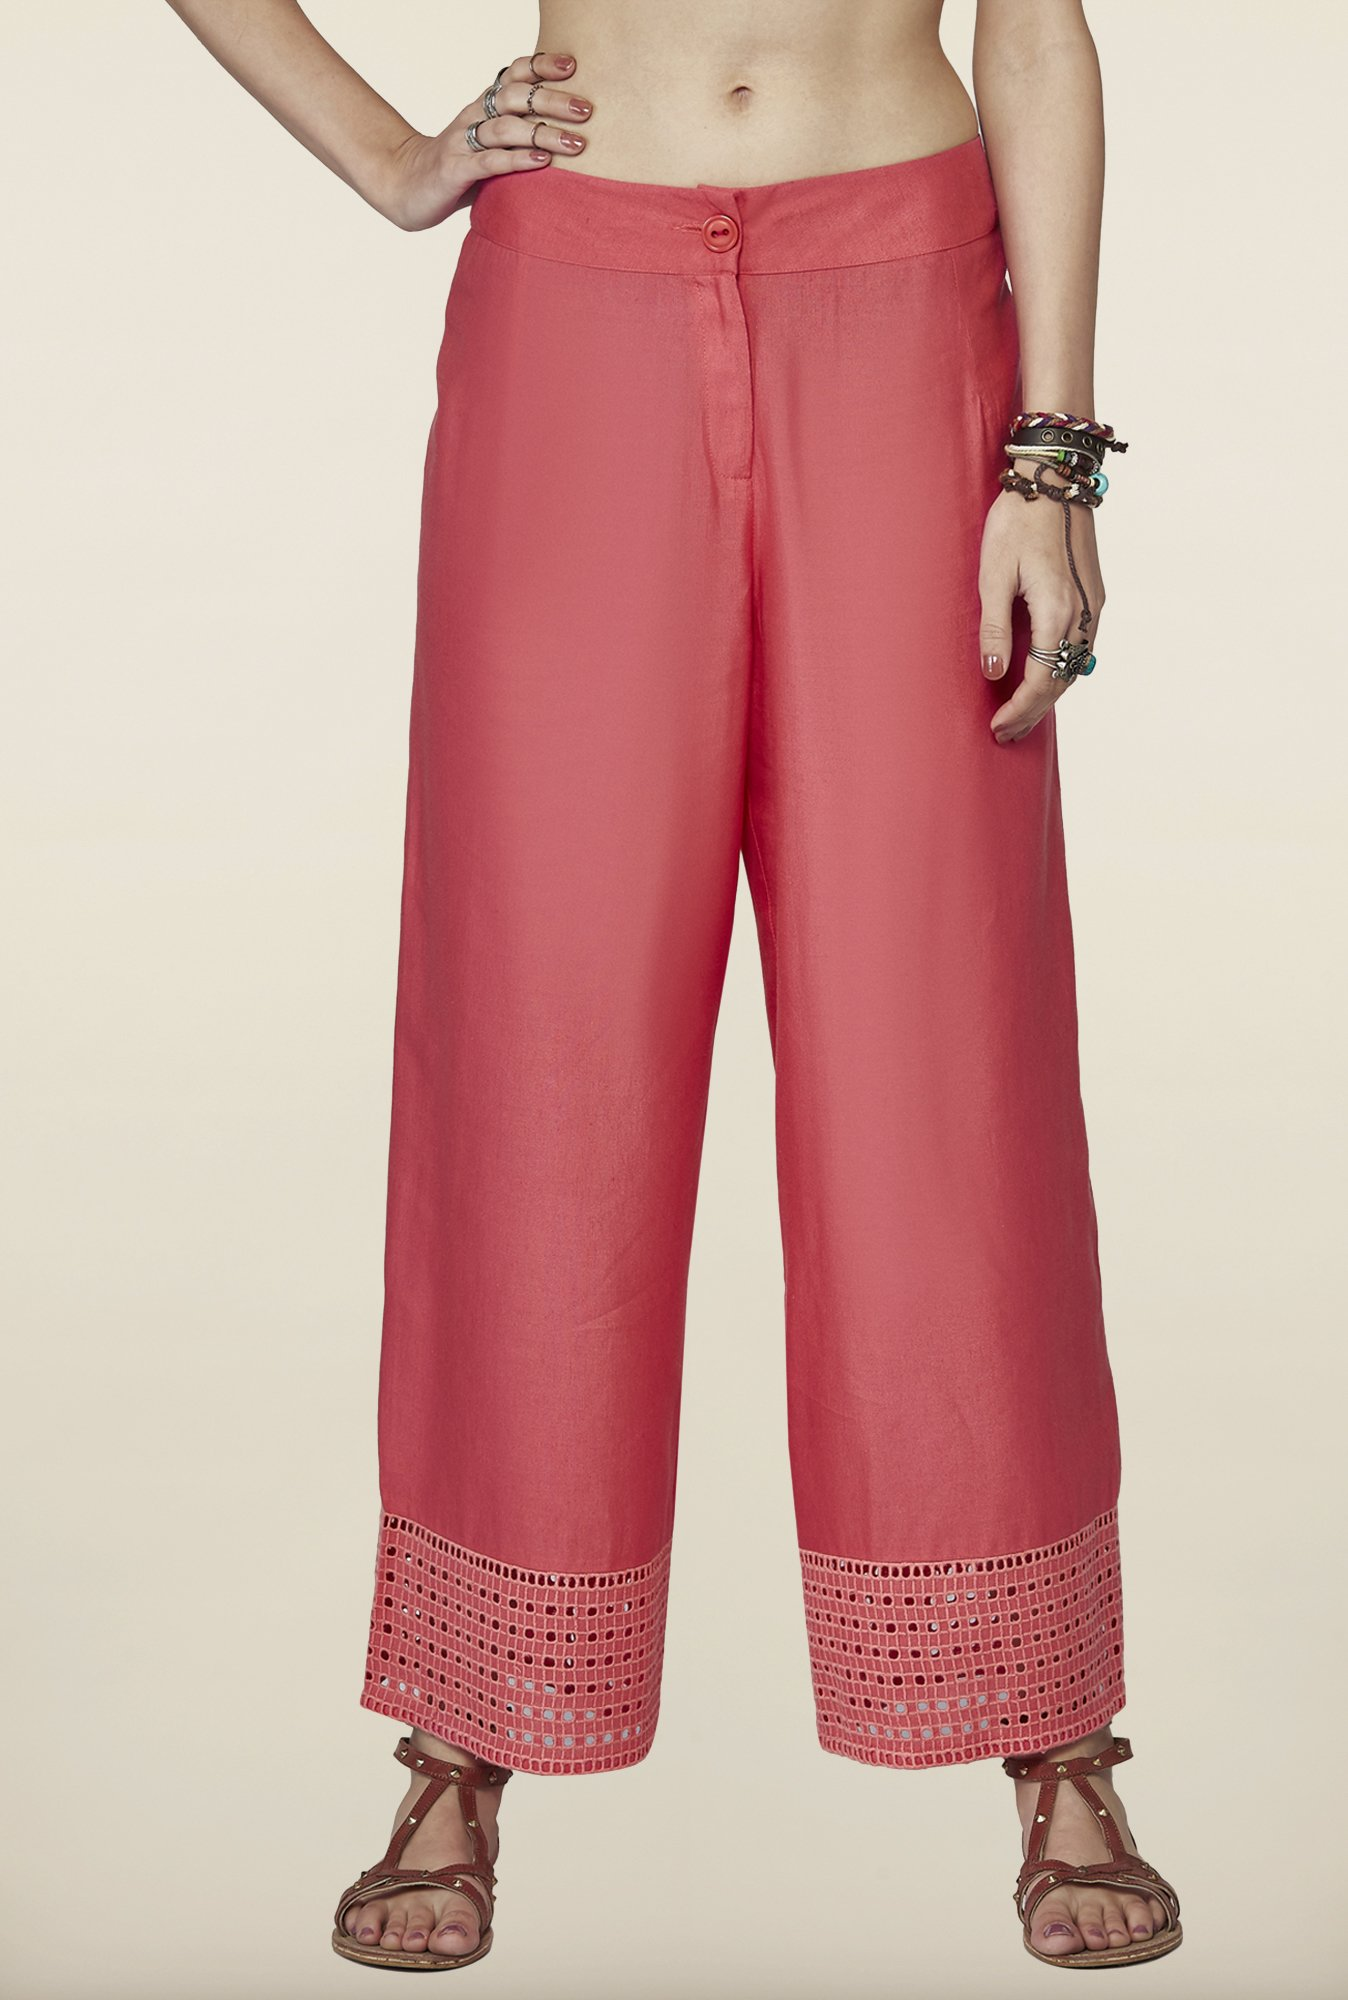 Global Desi Coral Solid Hakoba Pants